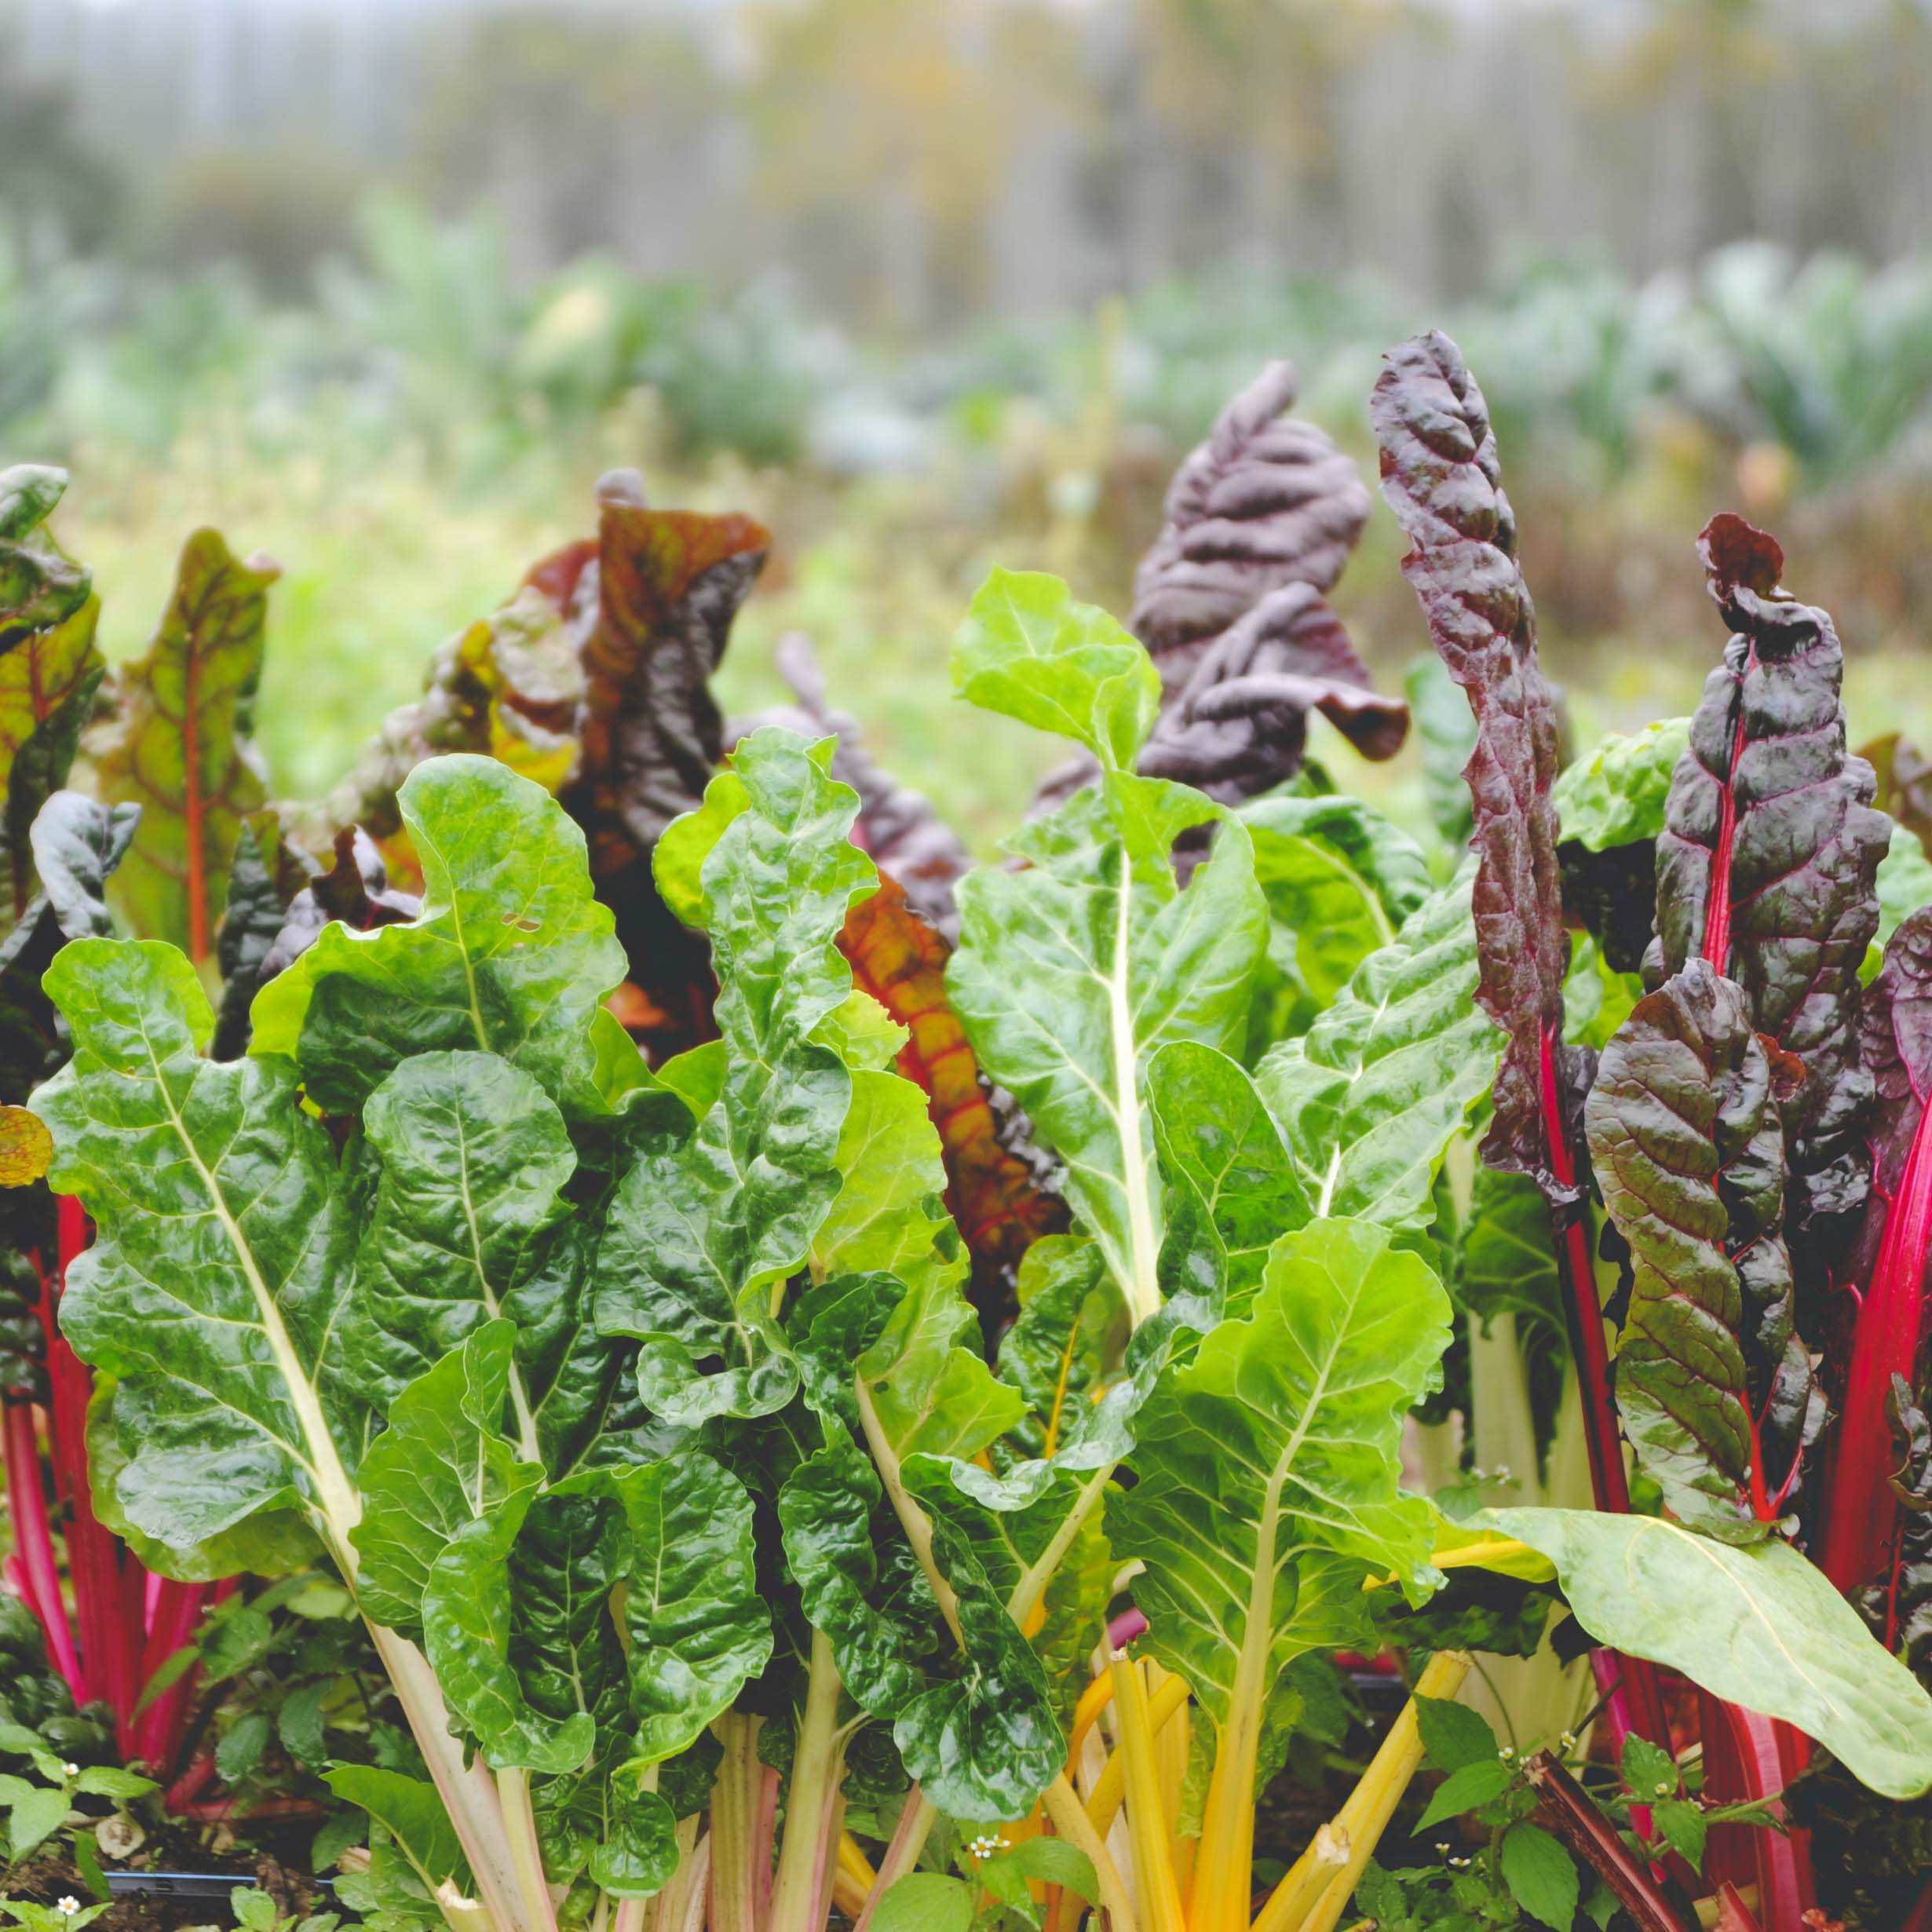 Chard   Bright Lights* and Fordhook  //  Cold tolerant to about 20° F. Can survive the winter and produce new growth in early spring.